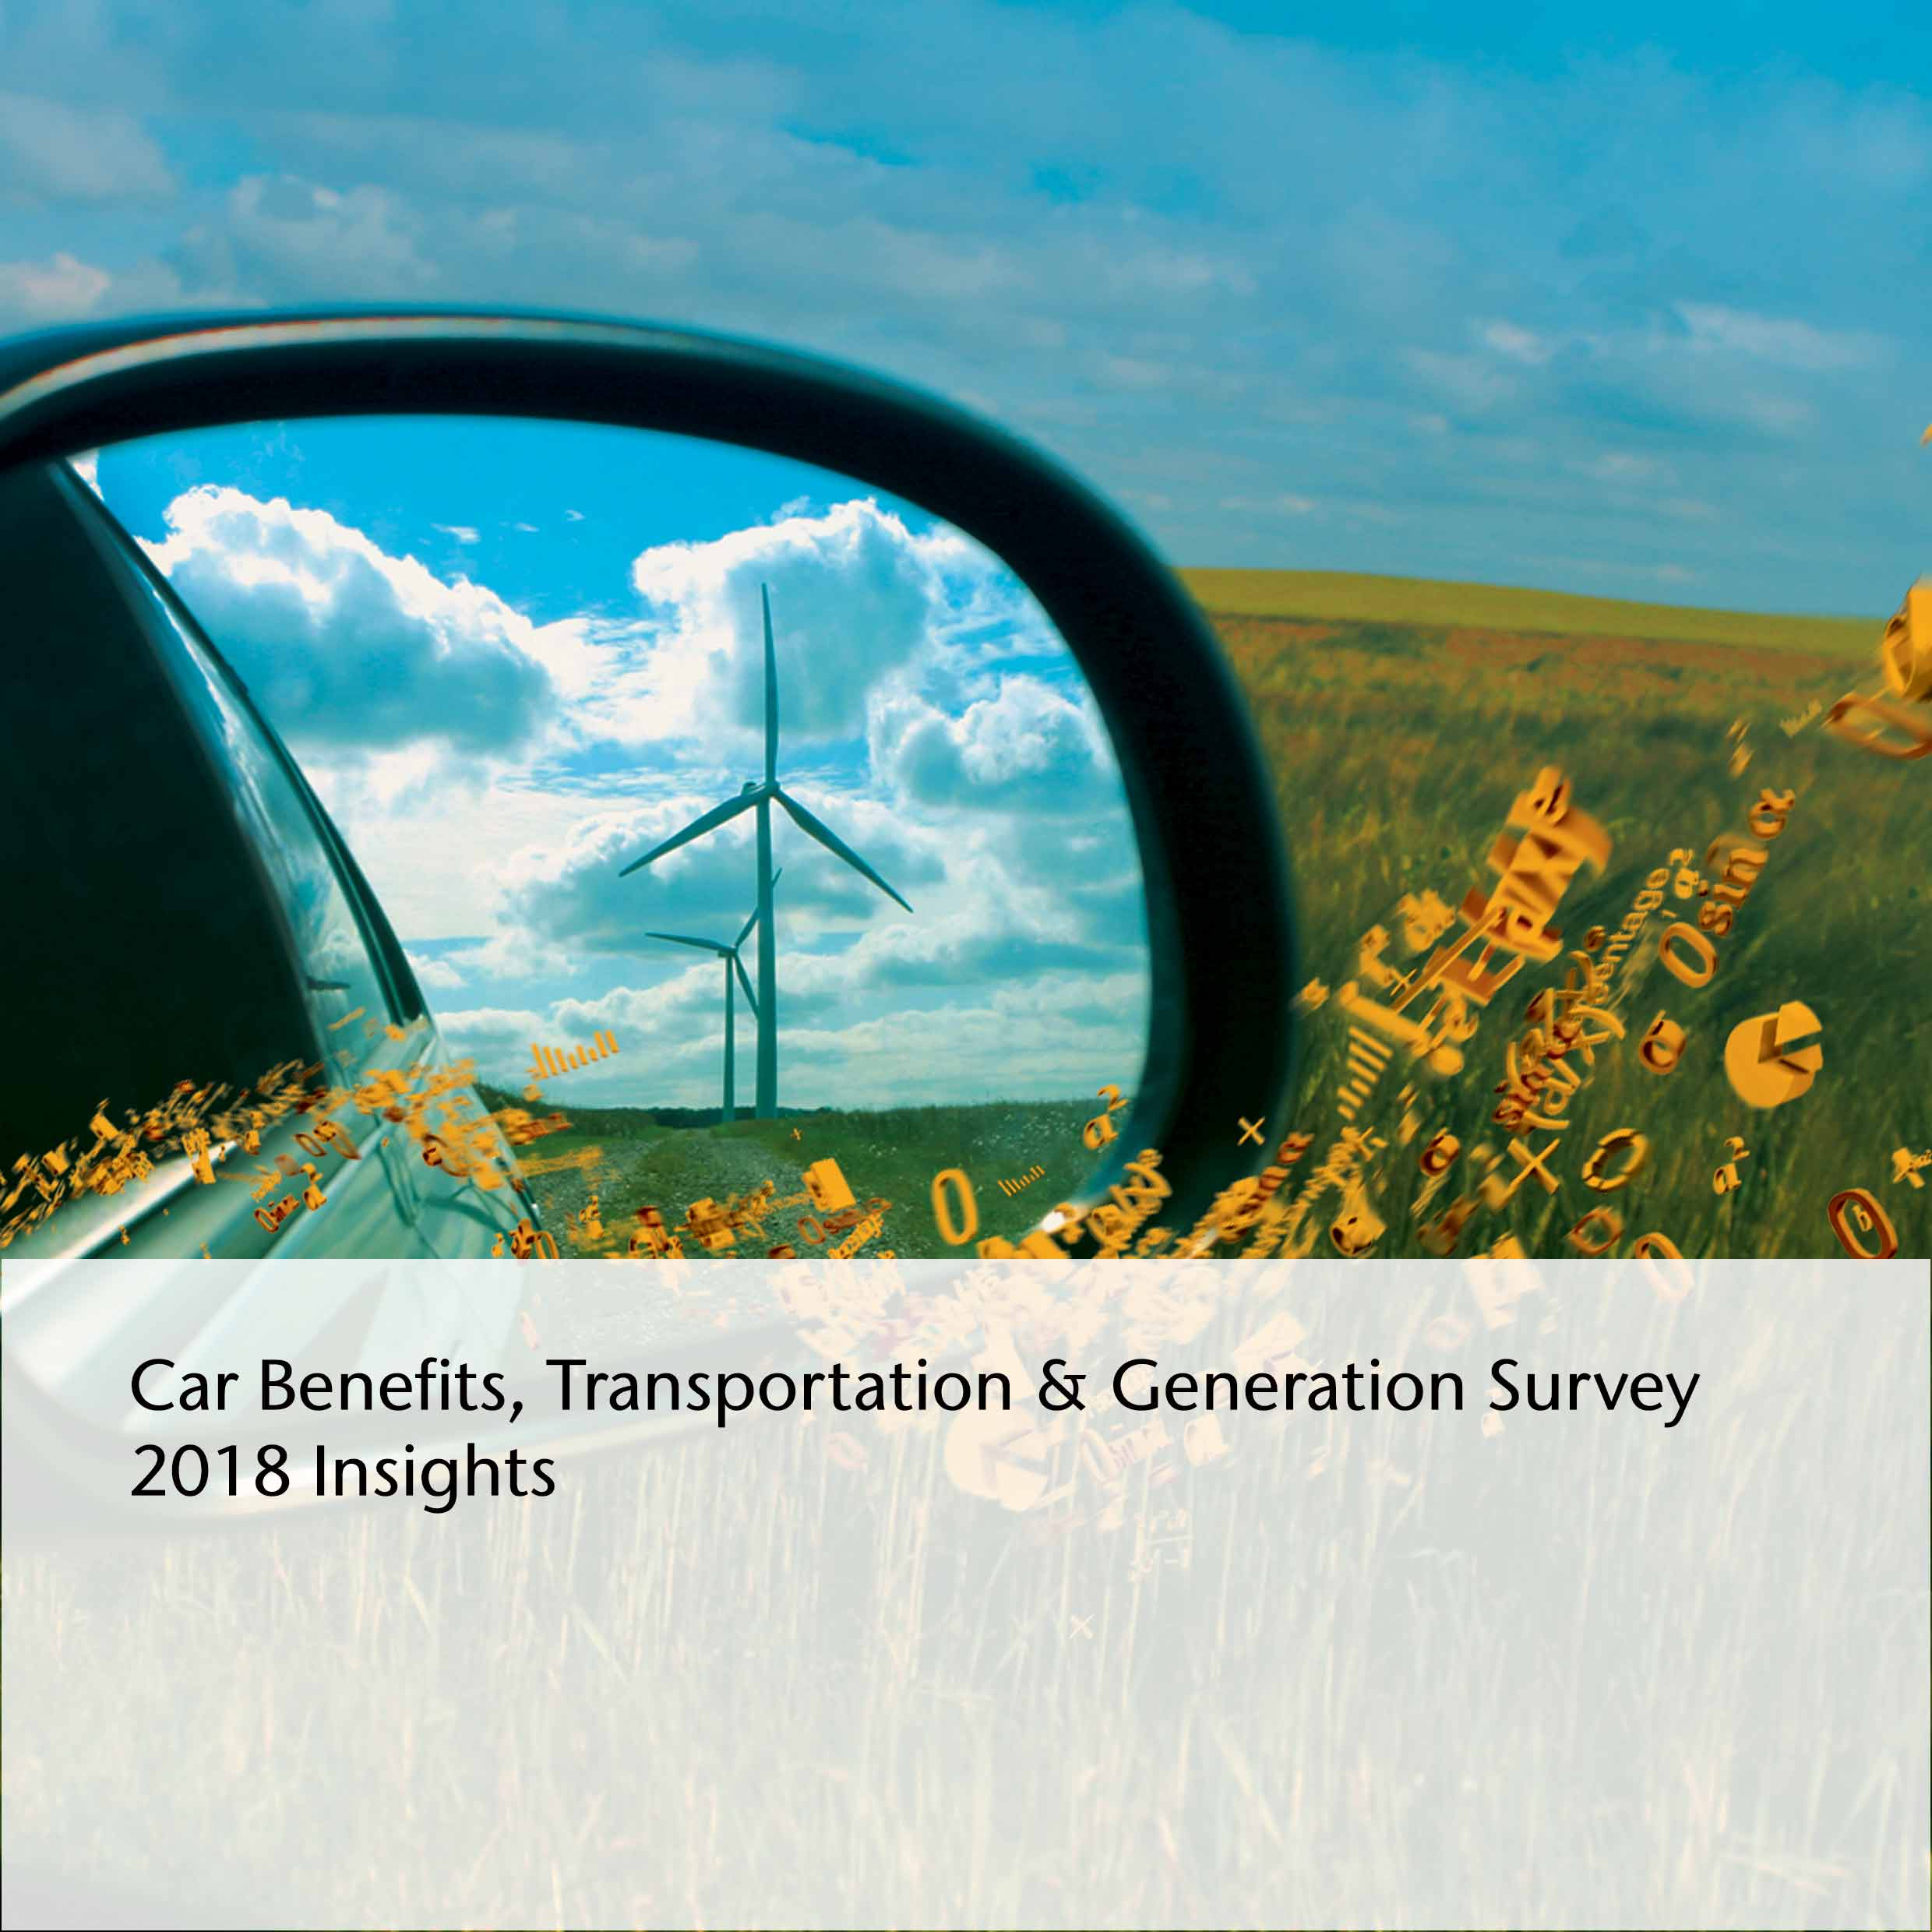 Aon Car Benefit, Transportation & Generation Survey 2018 Insights